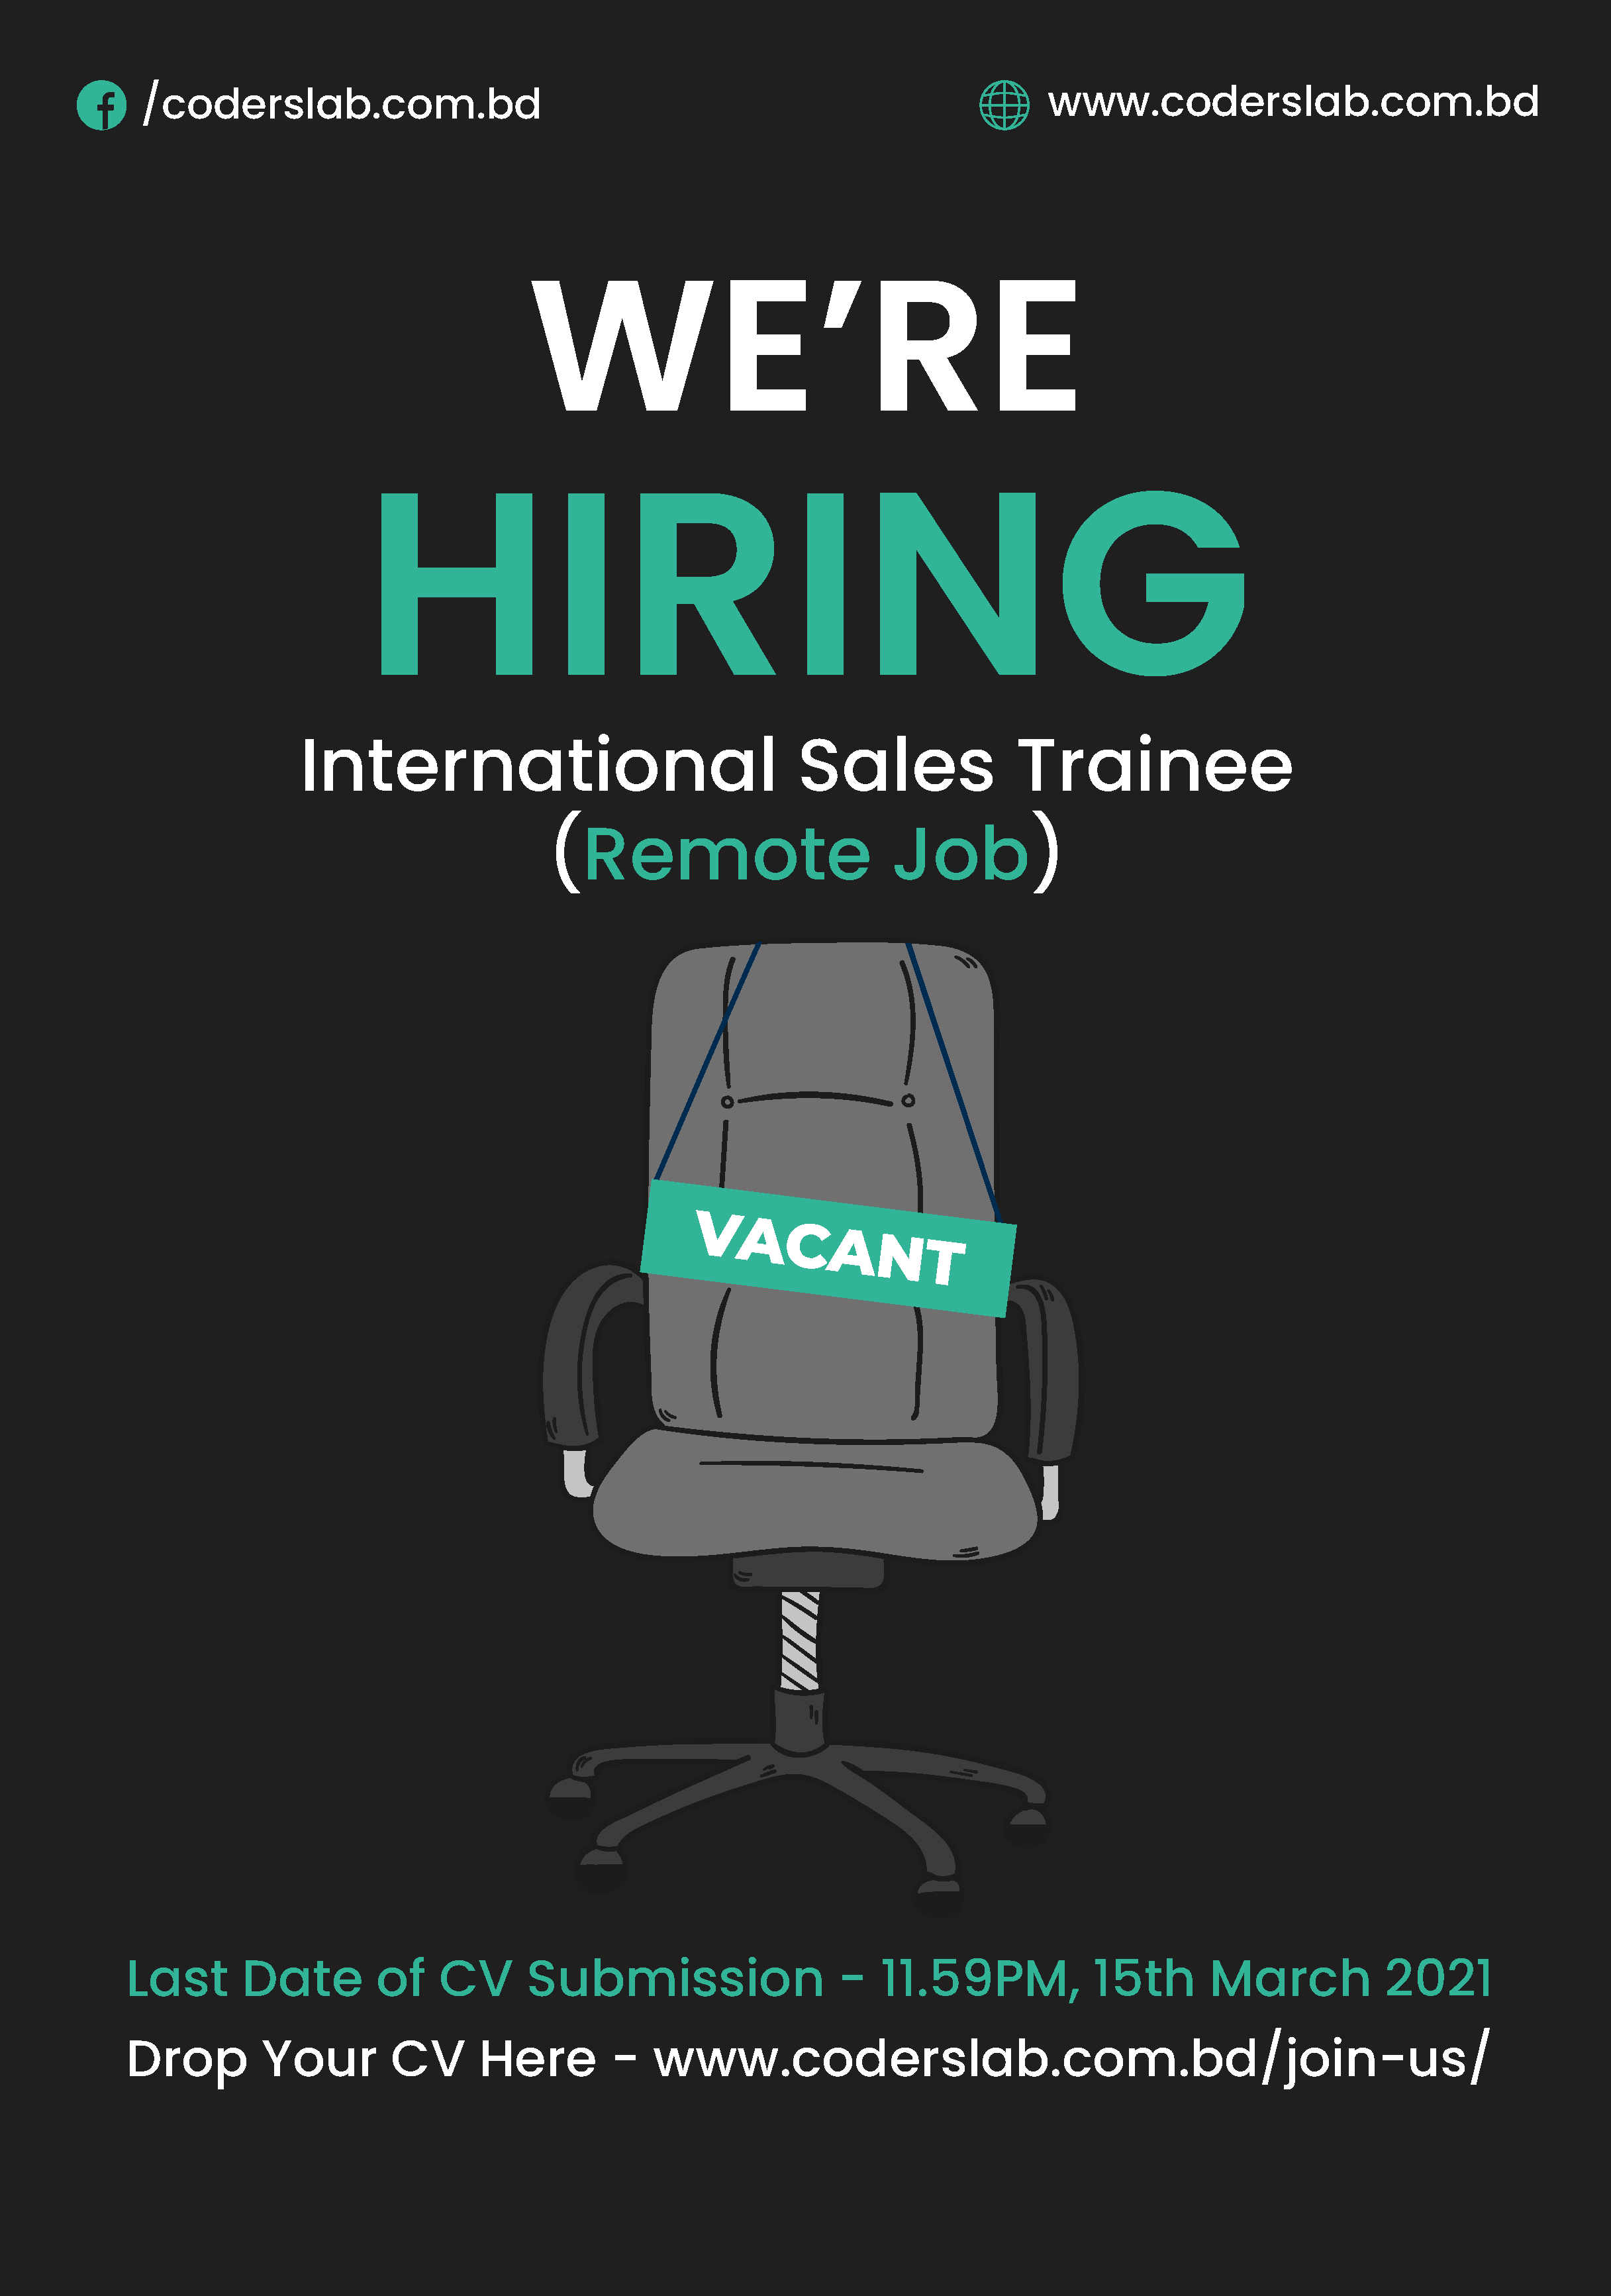 Apply for International Sales Trainee